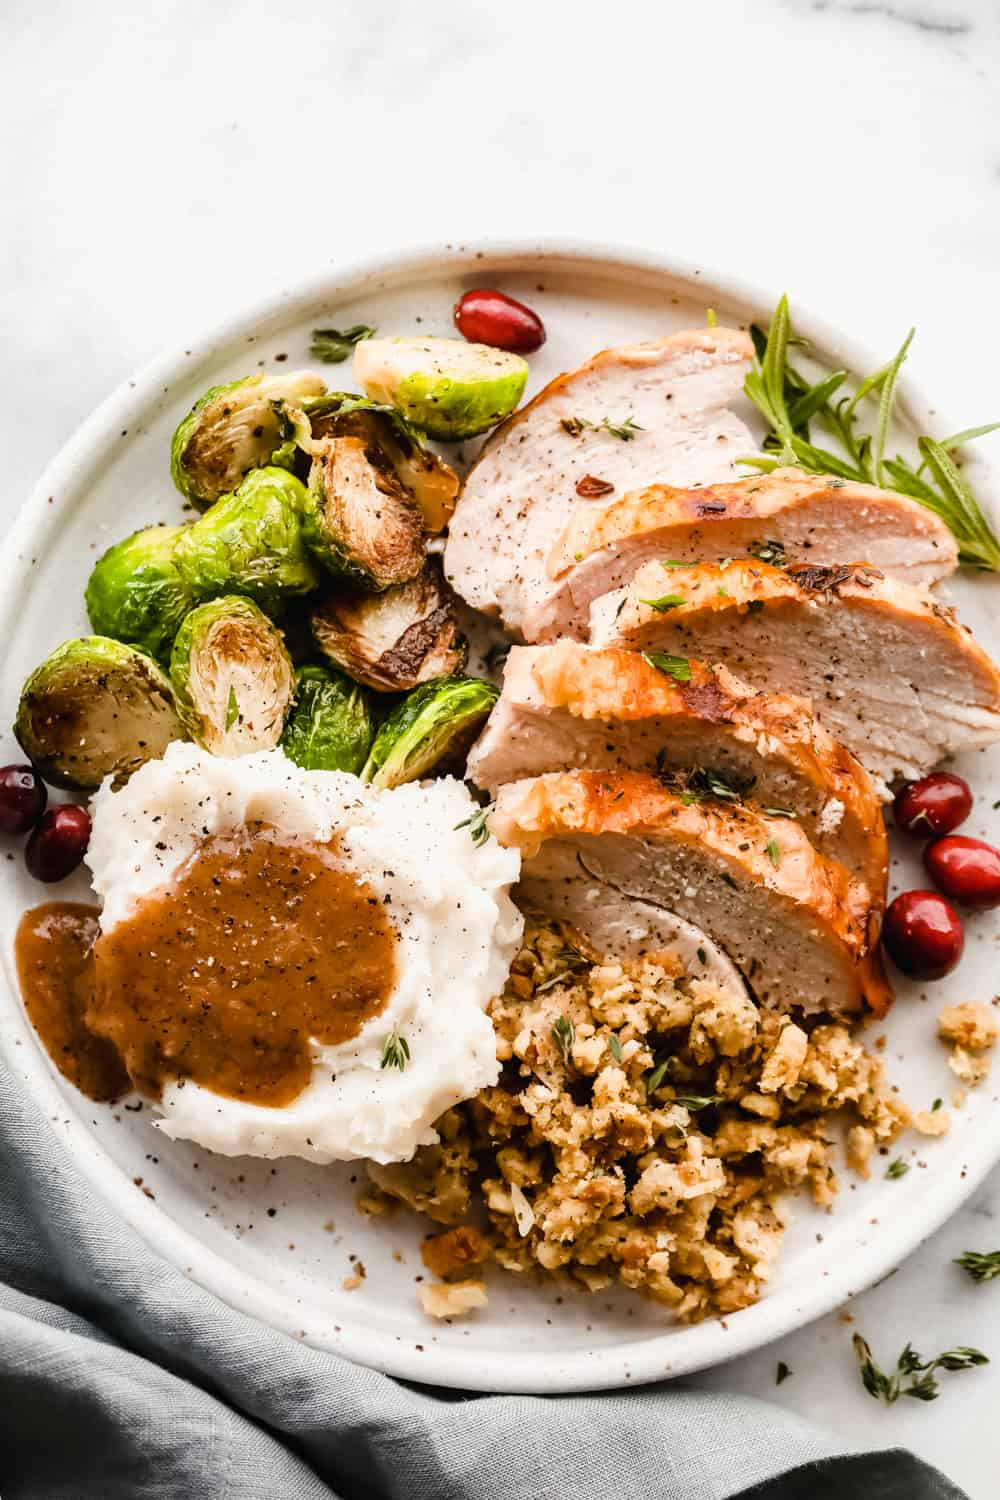 sliced turkey, mashed potatoes with turkey gravy, Brussel sprouts and pilaf all plated together.